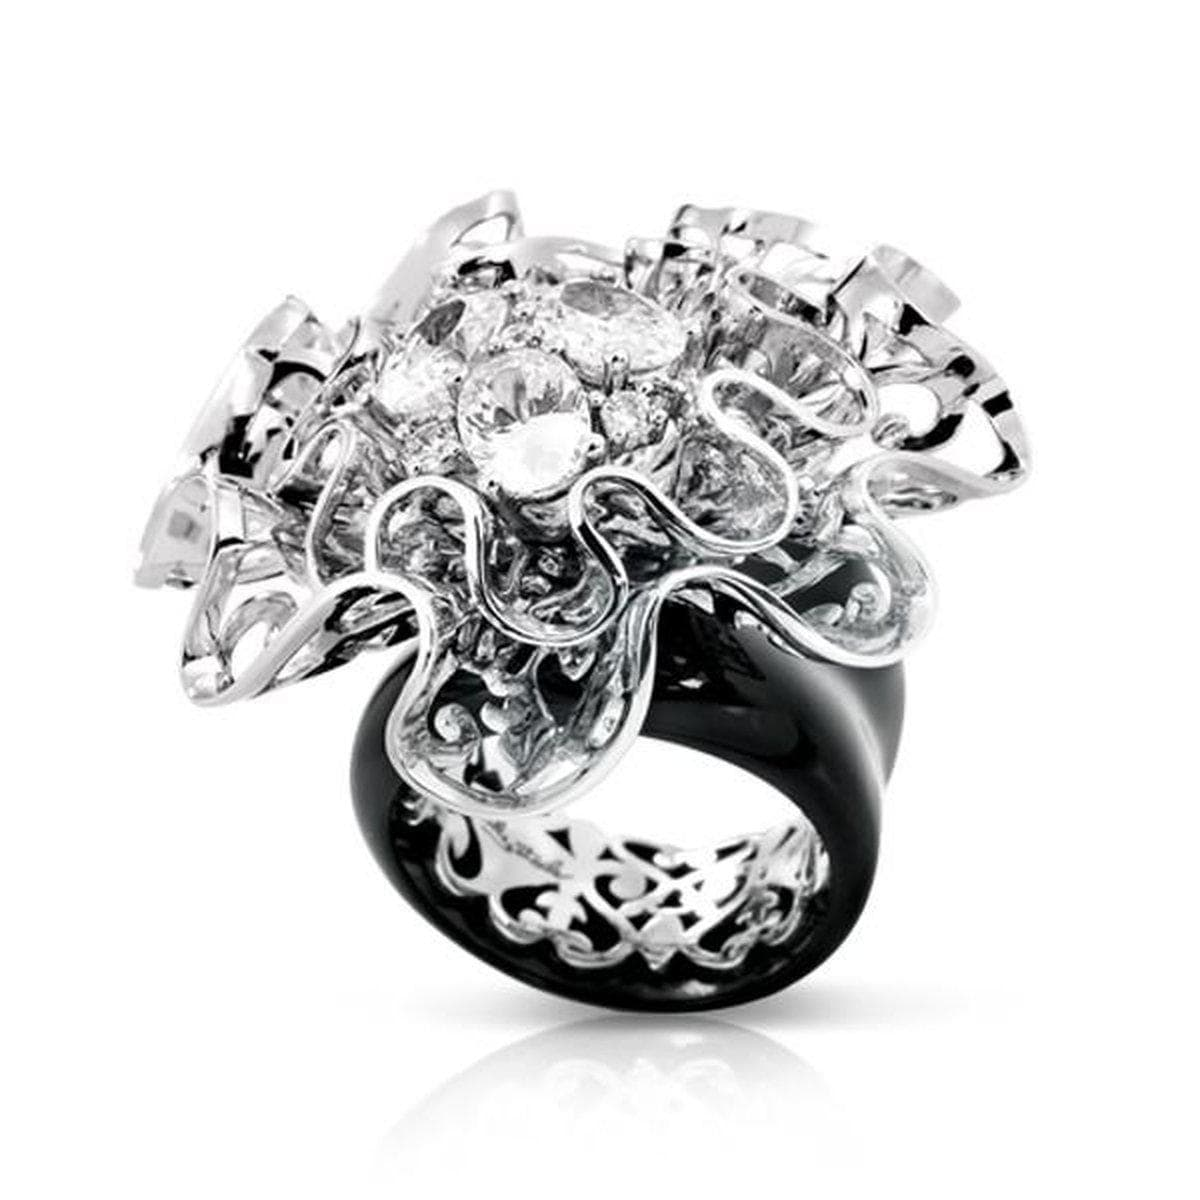 Corsage Black Ring-Belle Etoile-Renee Taylor Gallery